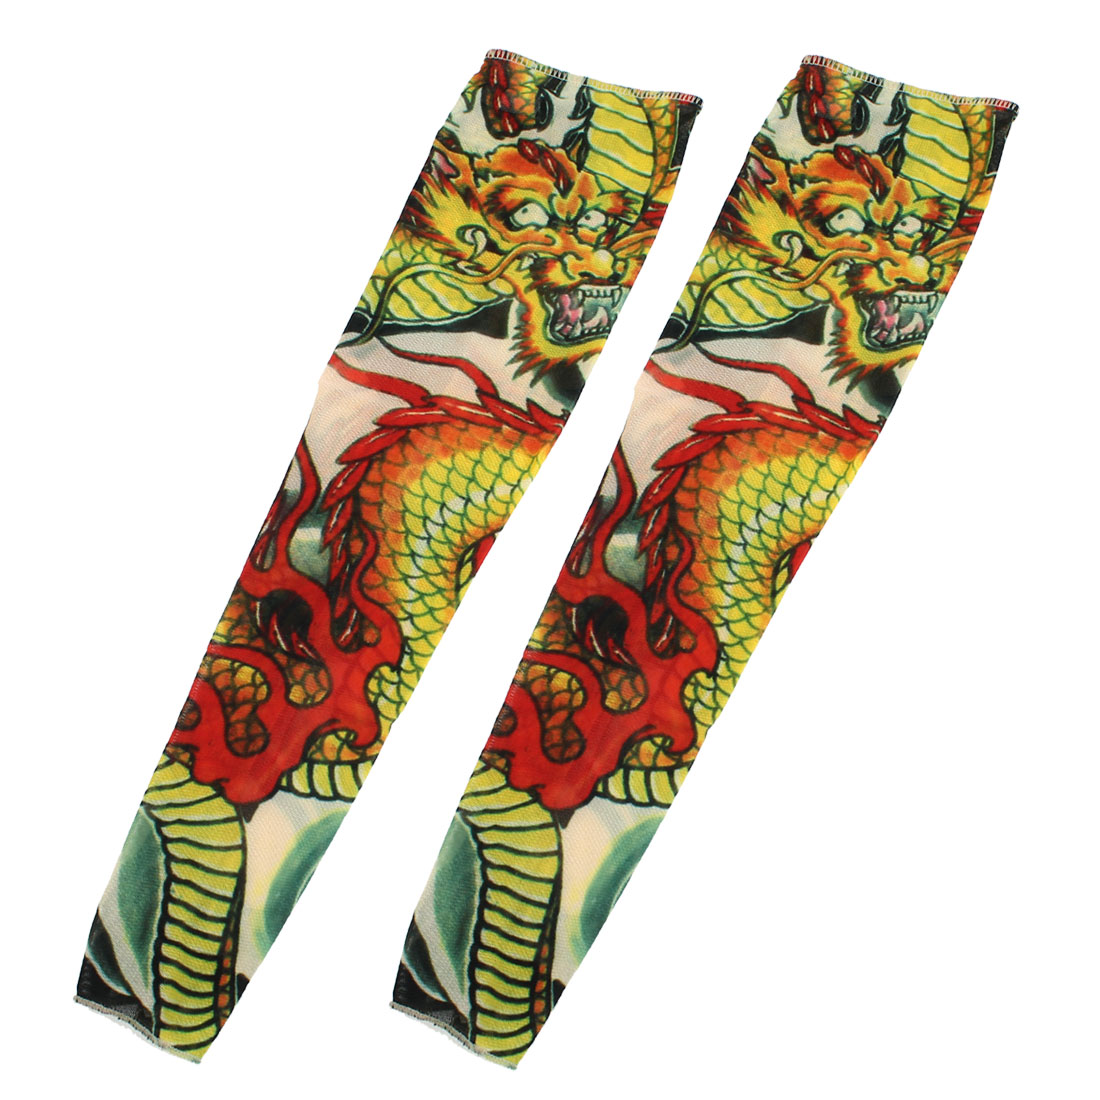 Unisex Dragon Printed Sun Protection Fake Temporary Tattoo Arm Sleeves 2pcs